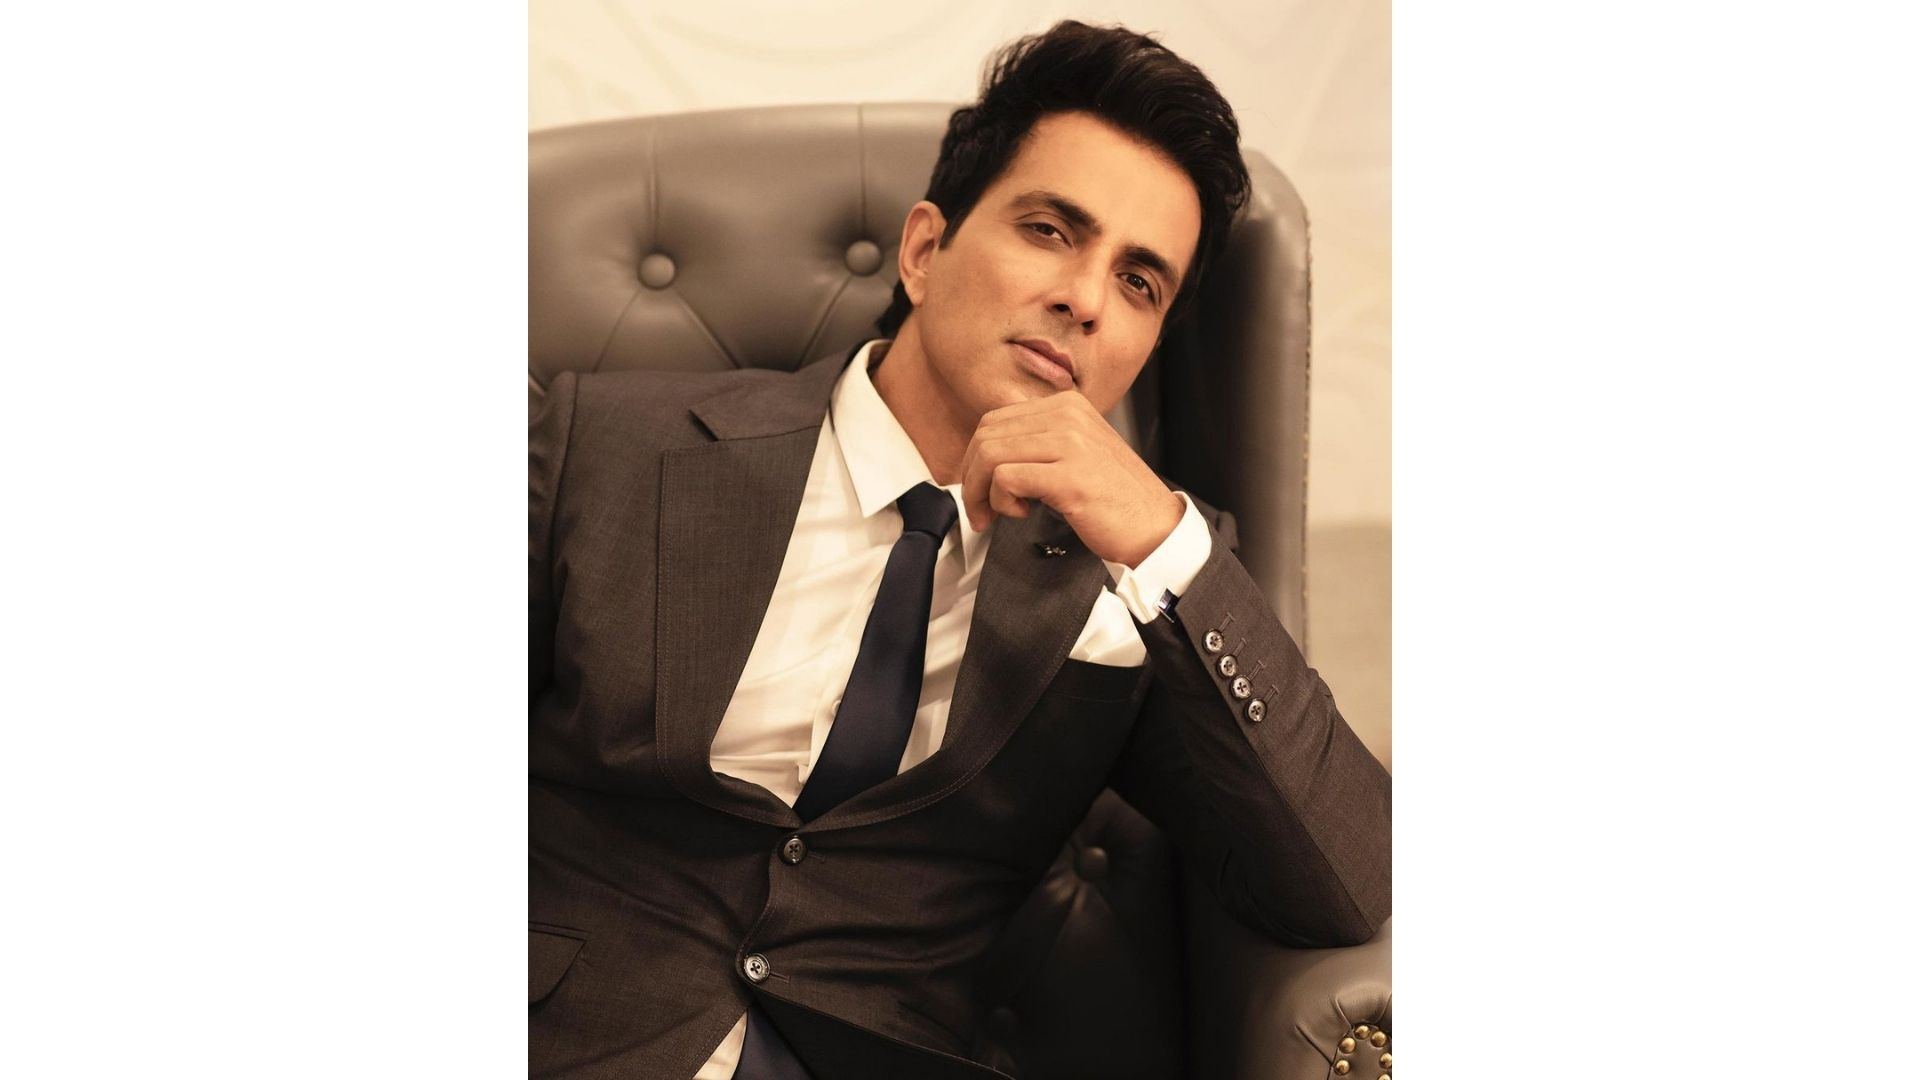 Sonu Sood Breaks His Silence On The Income Tax 'Surveys' At His Residence And Offices – WATCH VIDEO